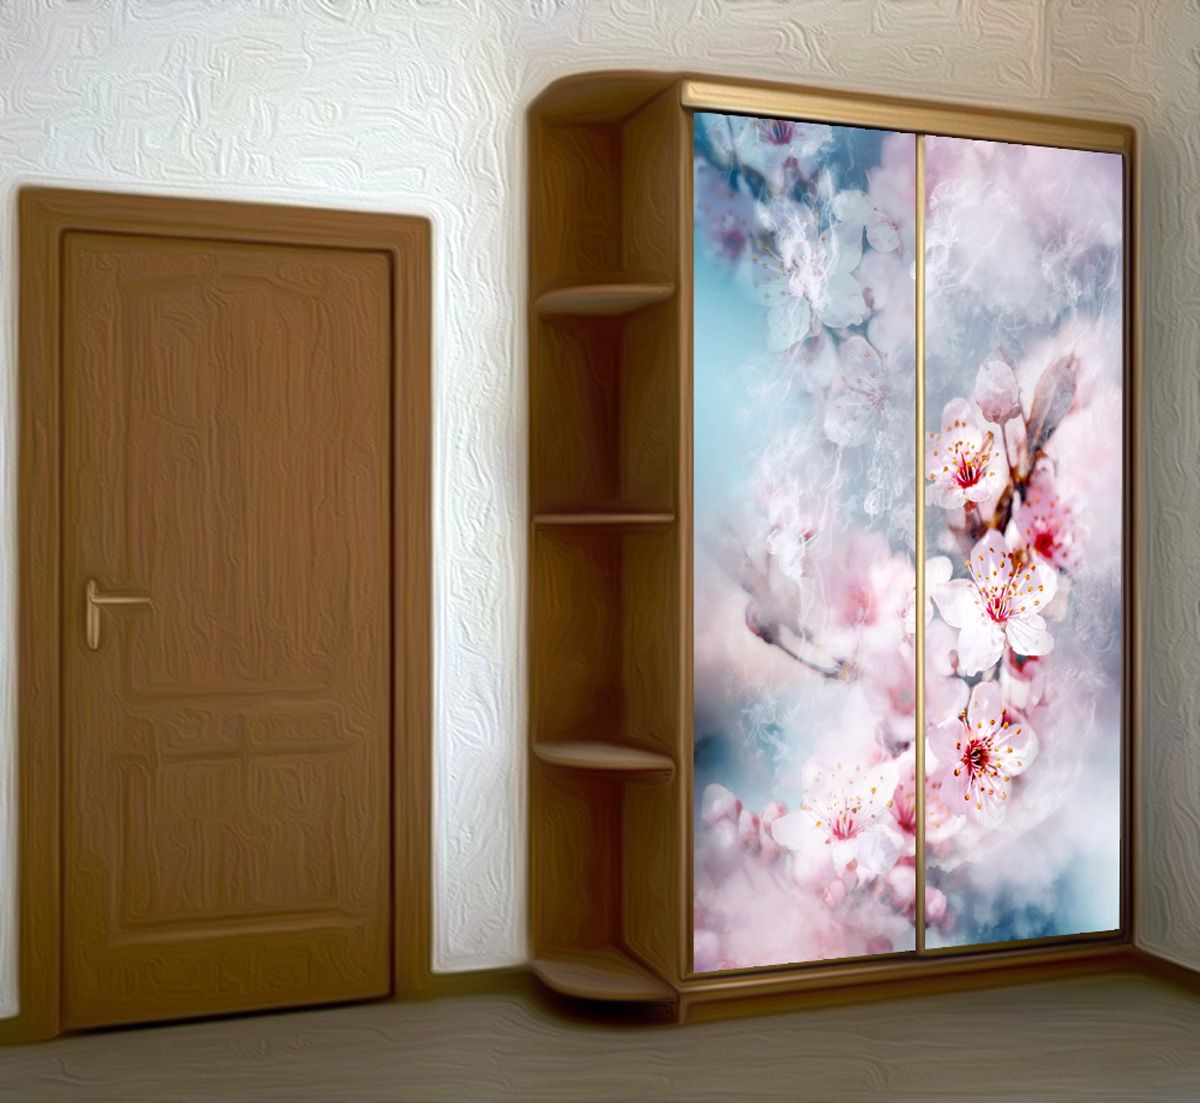 Wardrobe Stickers - The air is filled with tenderness by X-Decor